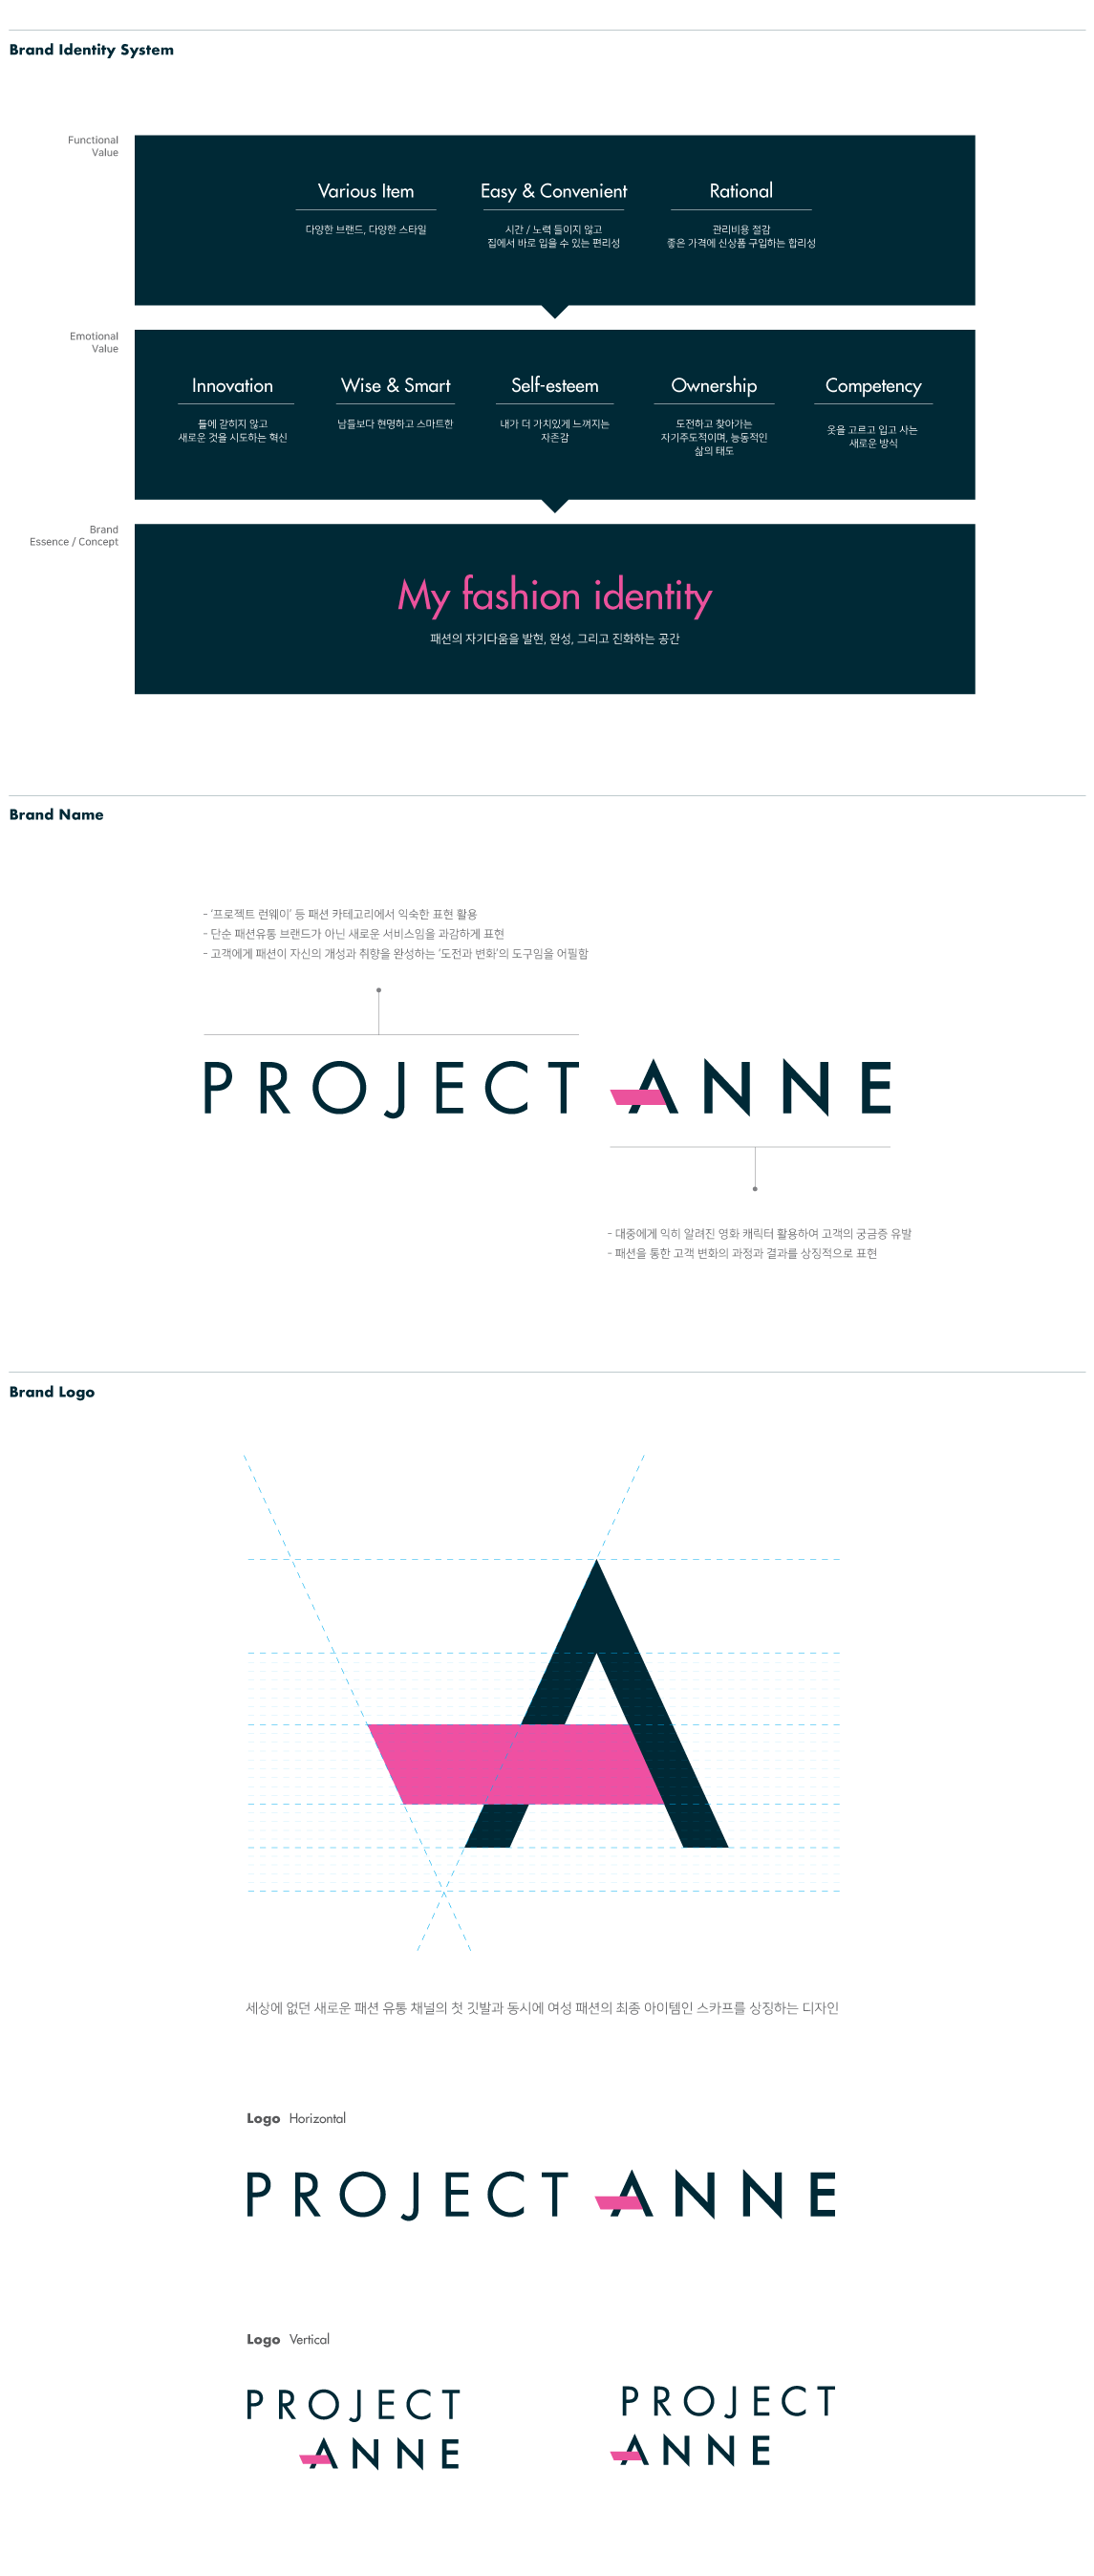 project-anne_page-2